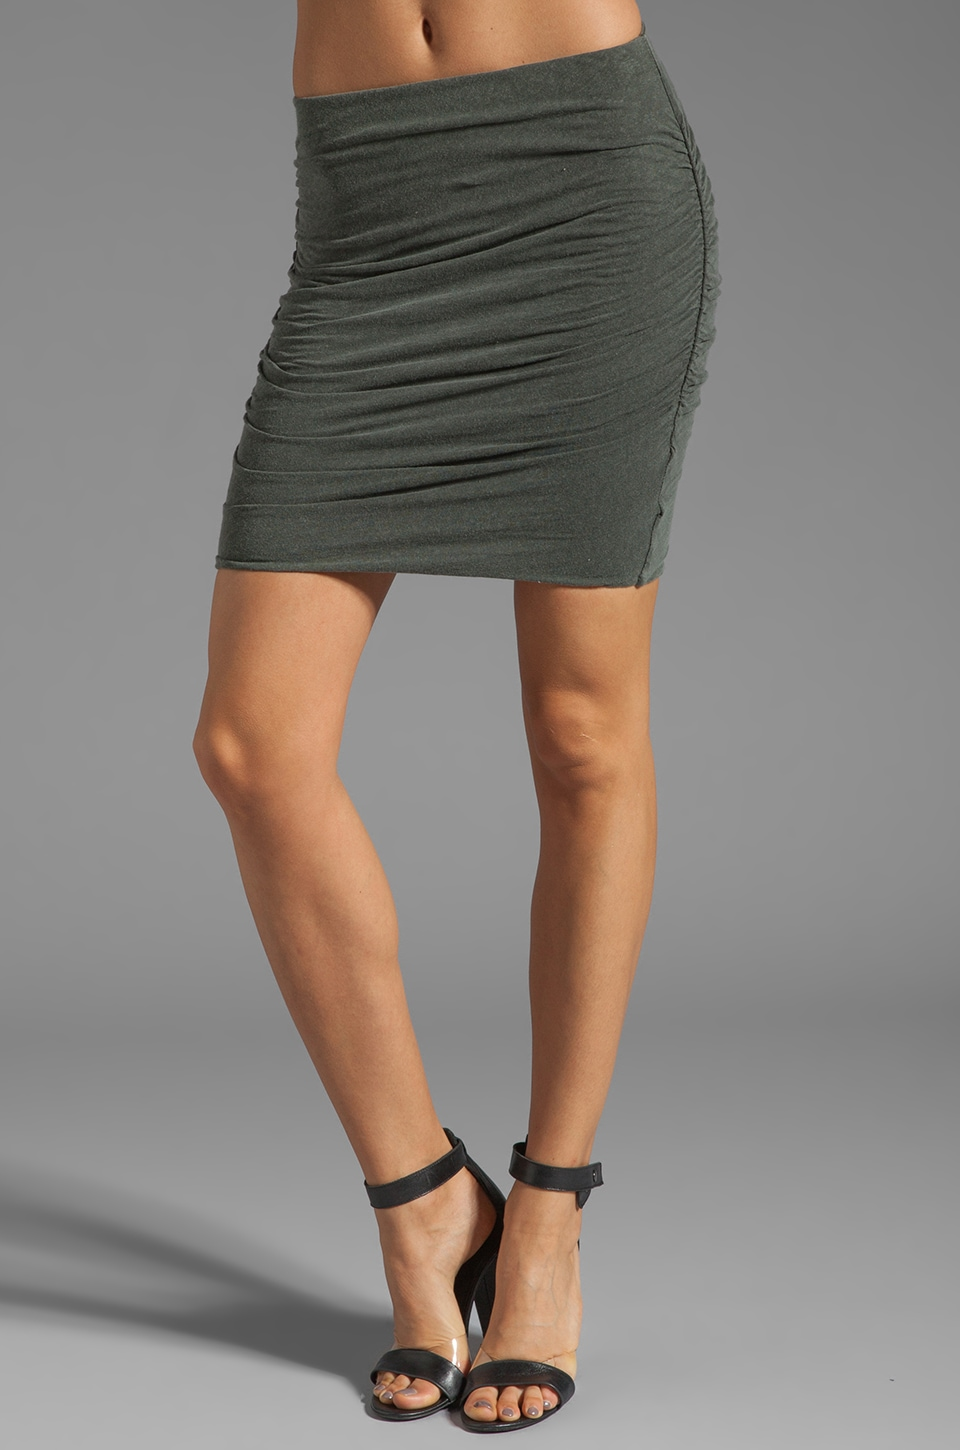 James Perse Linen Blend Ruched Mini Skirt in Alligator